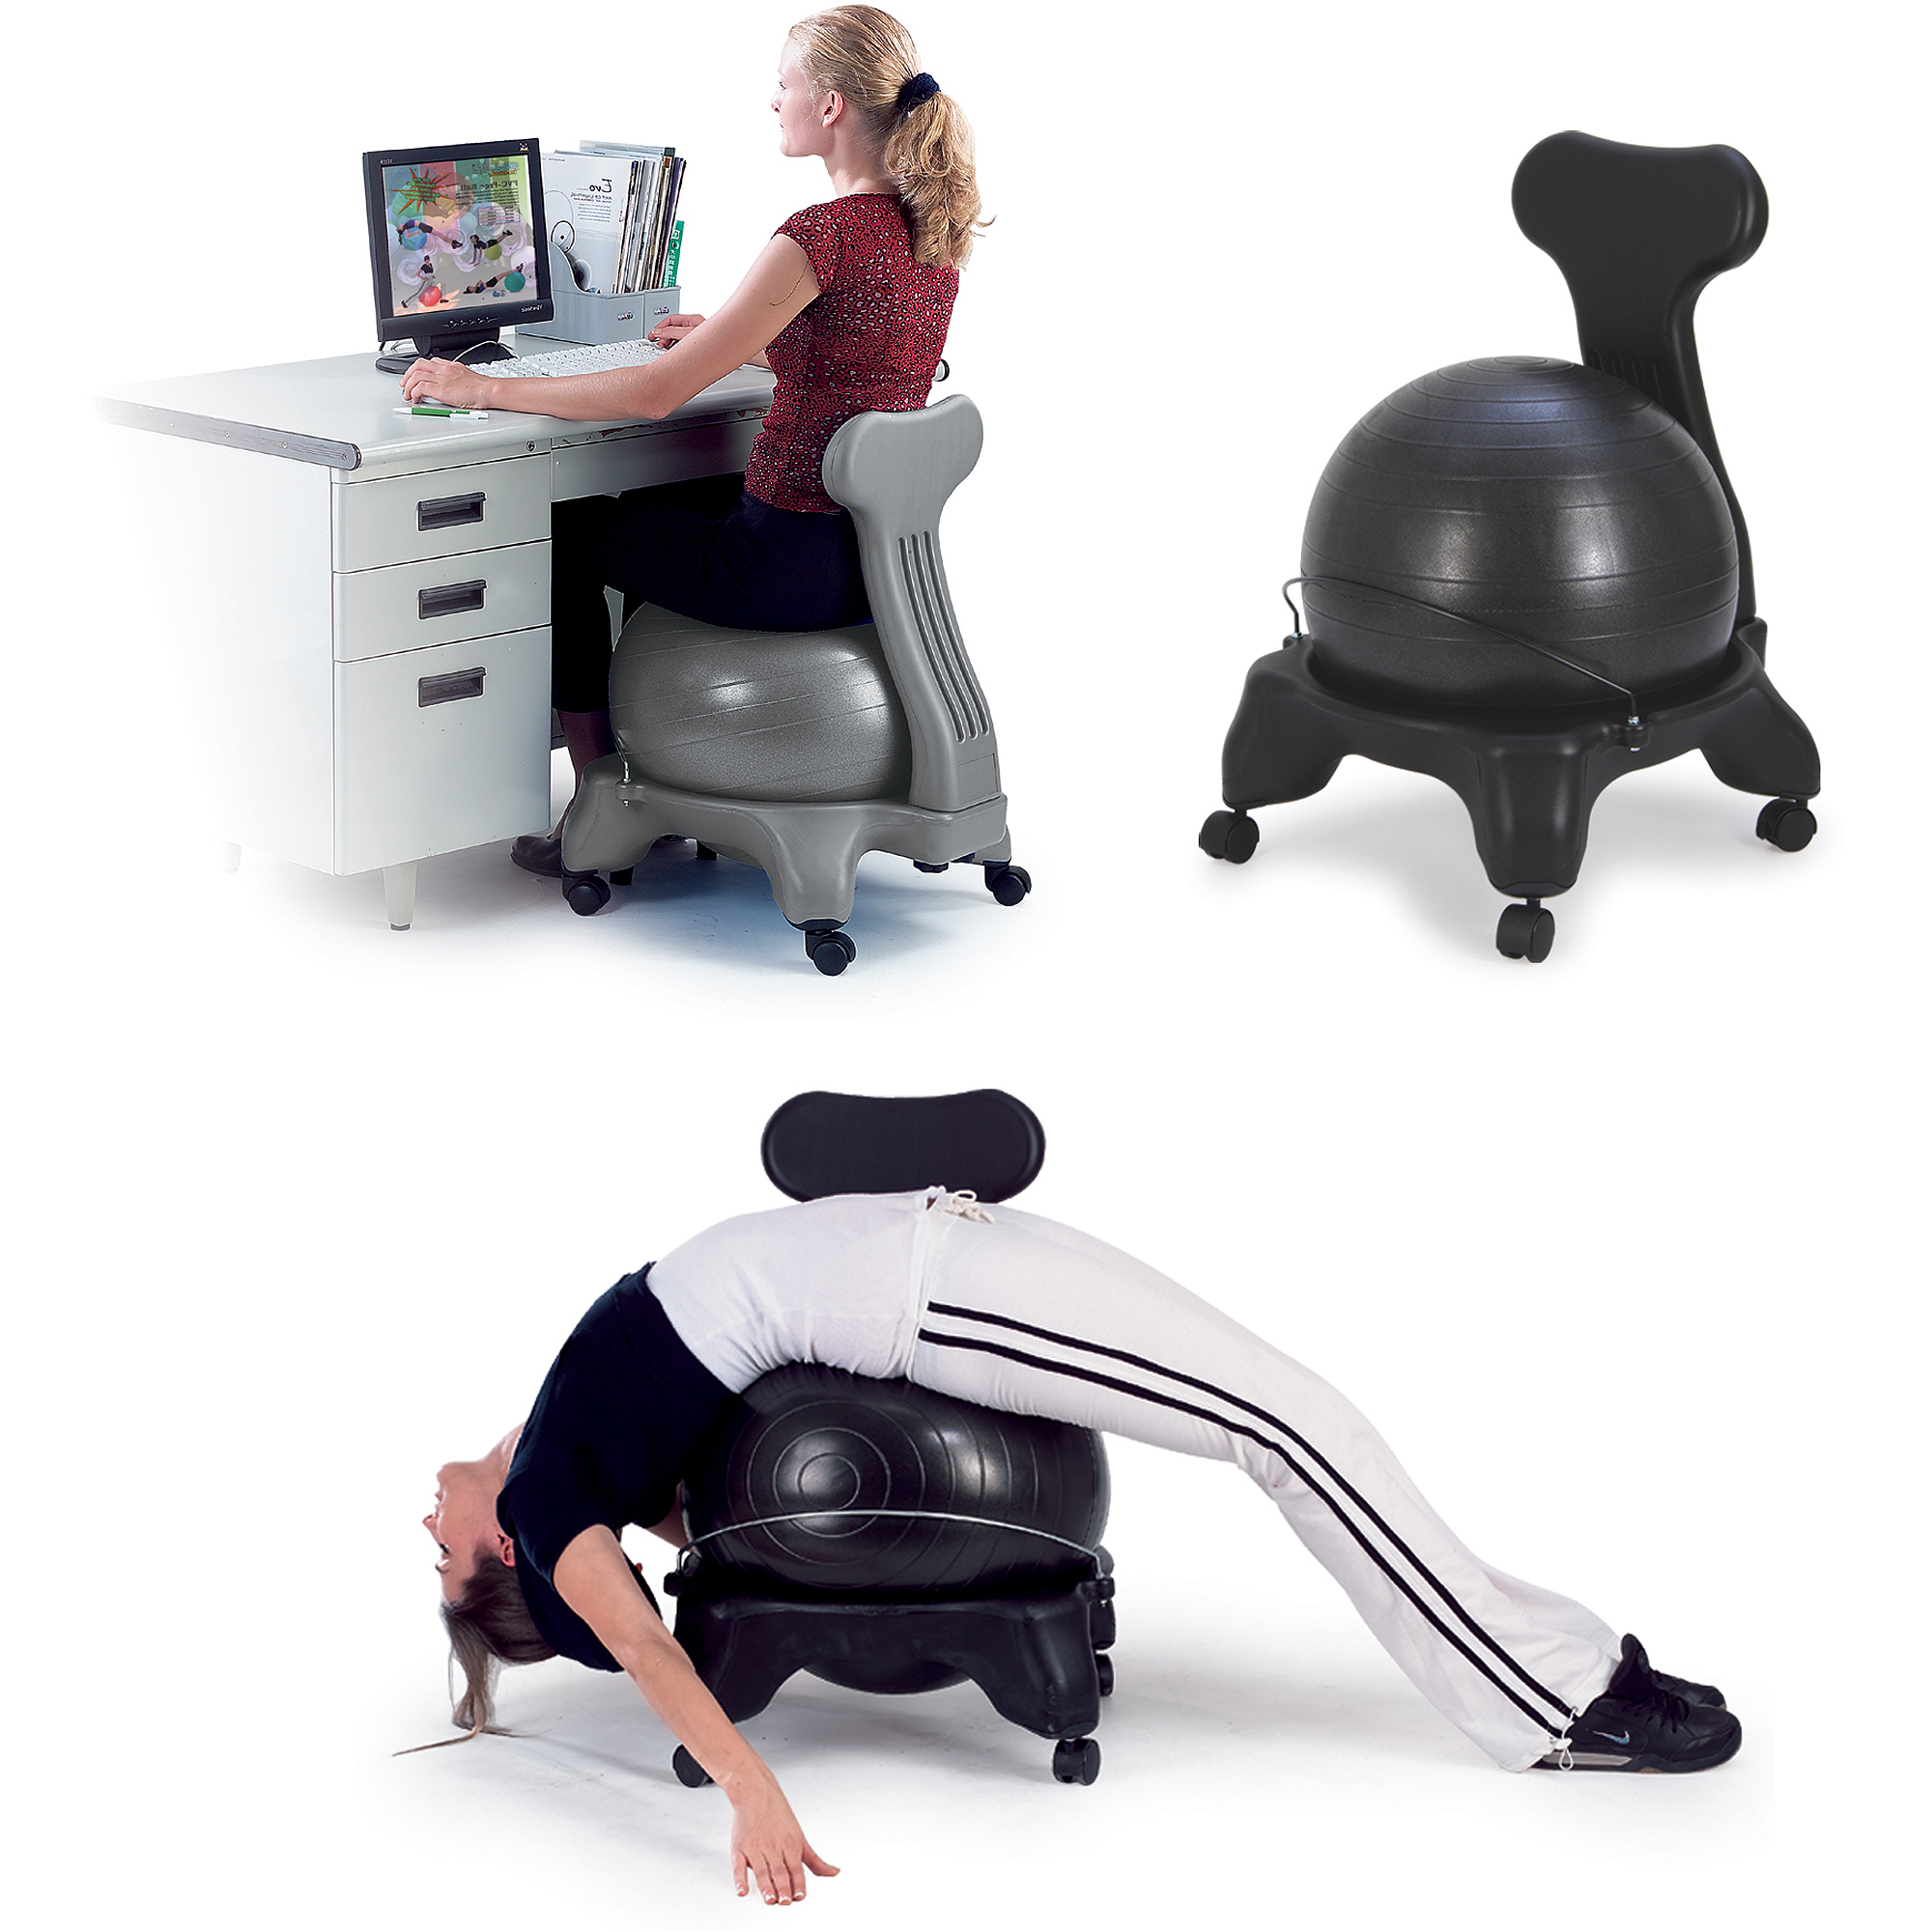 chair gym exercise manual aeron by herman miller ball seats